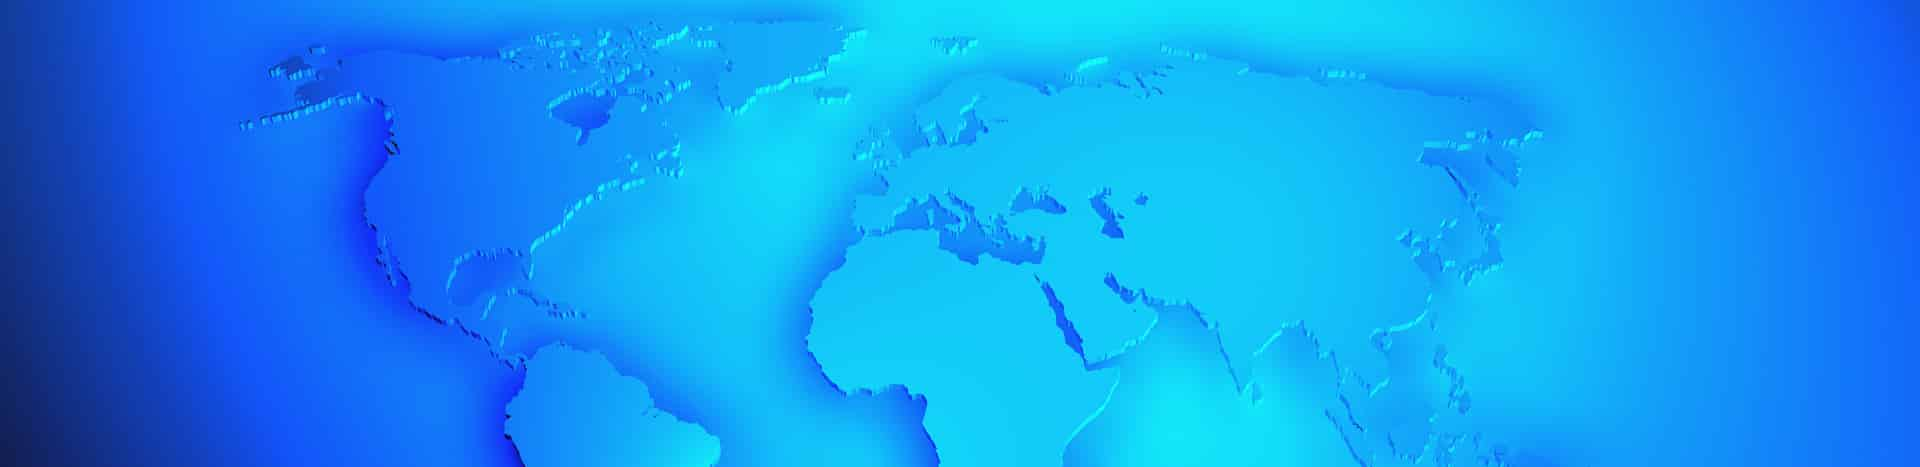 Global Network - swiss immigration + relocations services